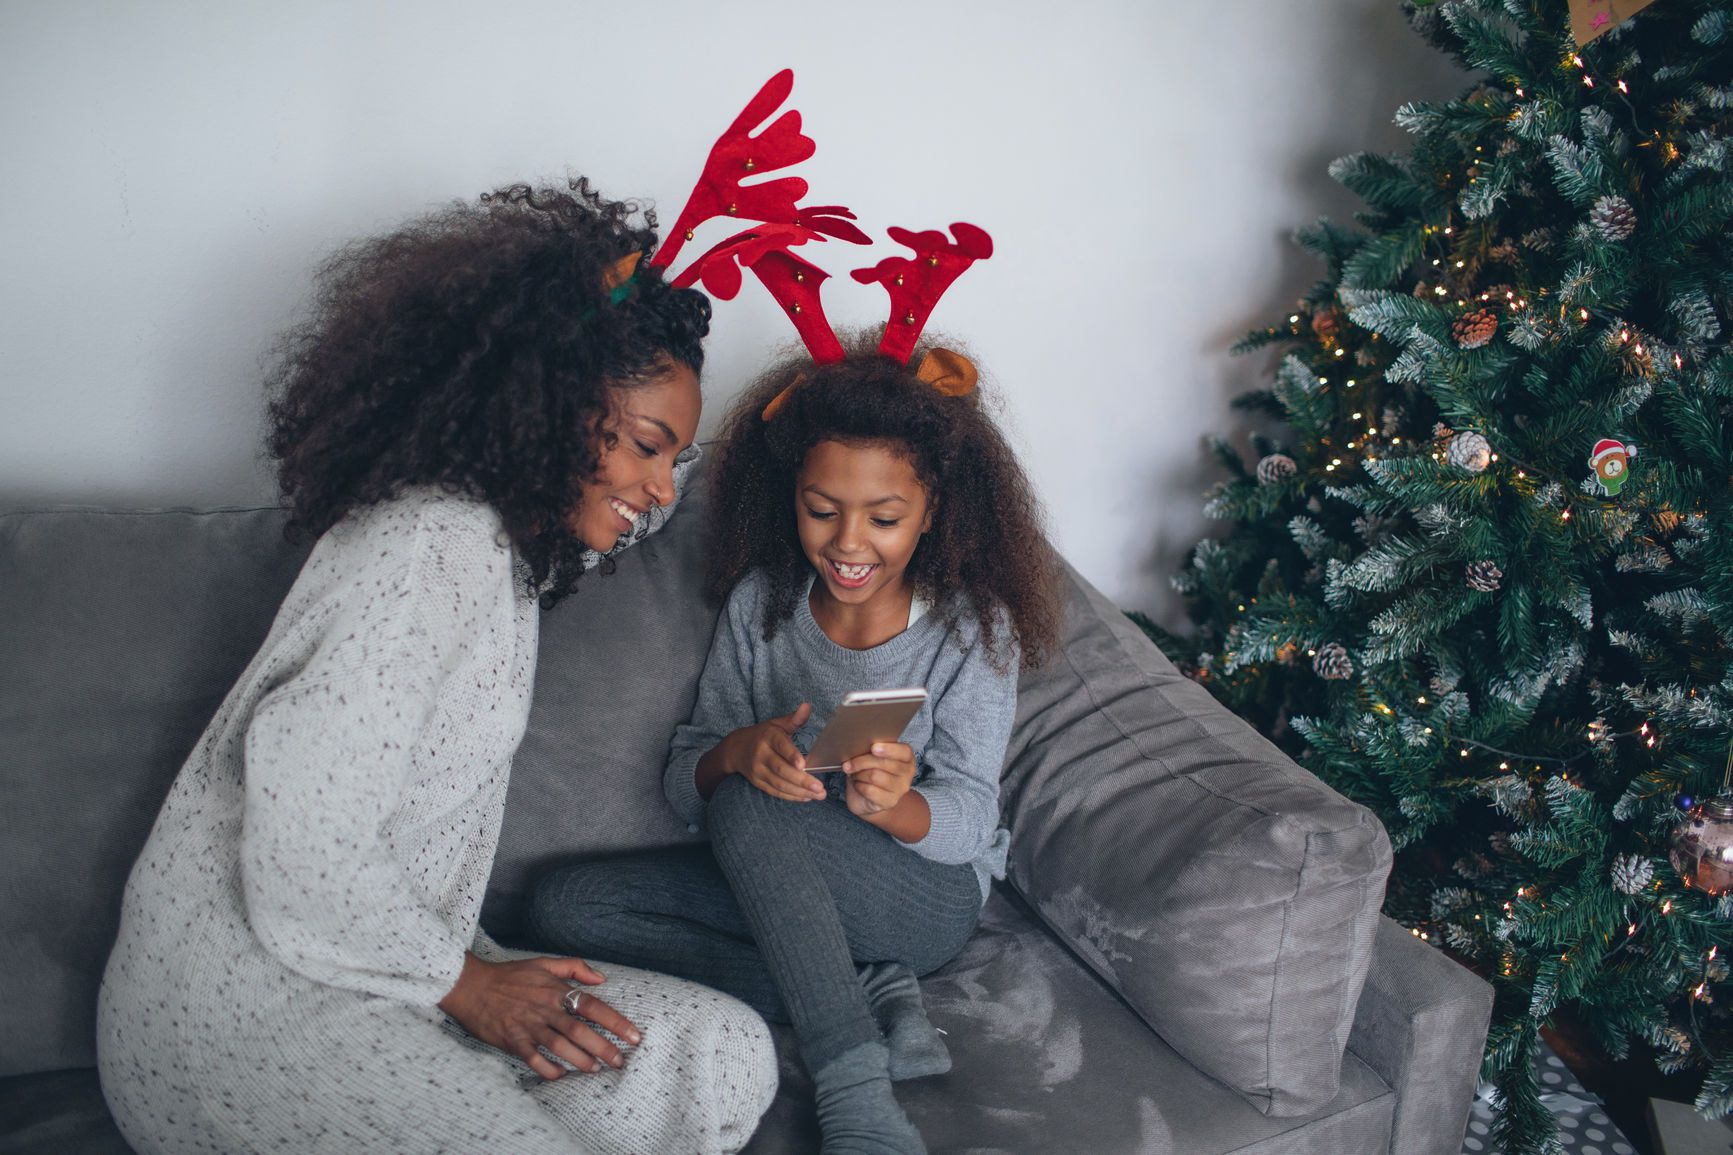 Get a Free Call From Santa Personalized for Your Child